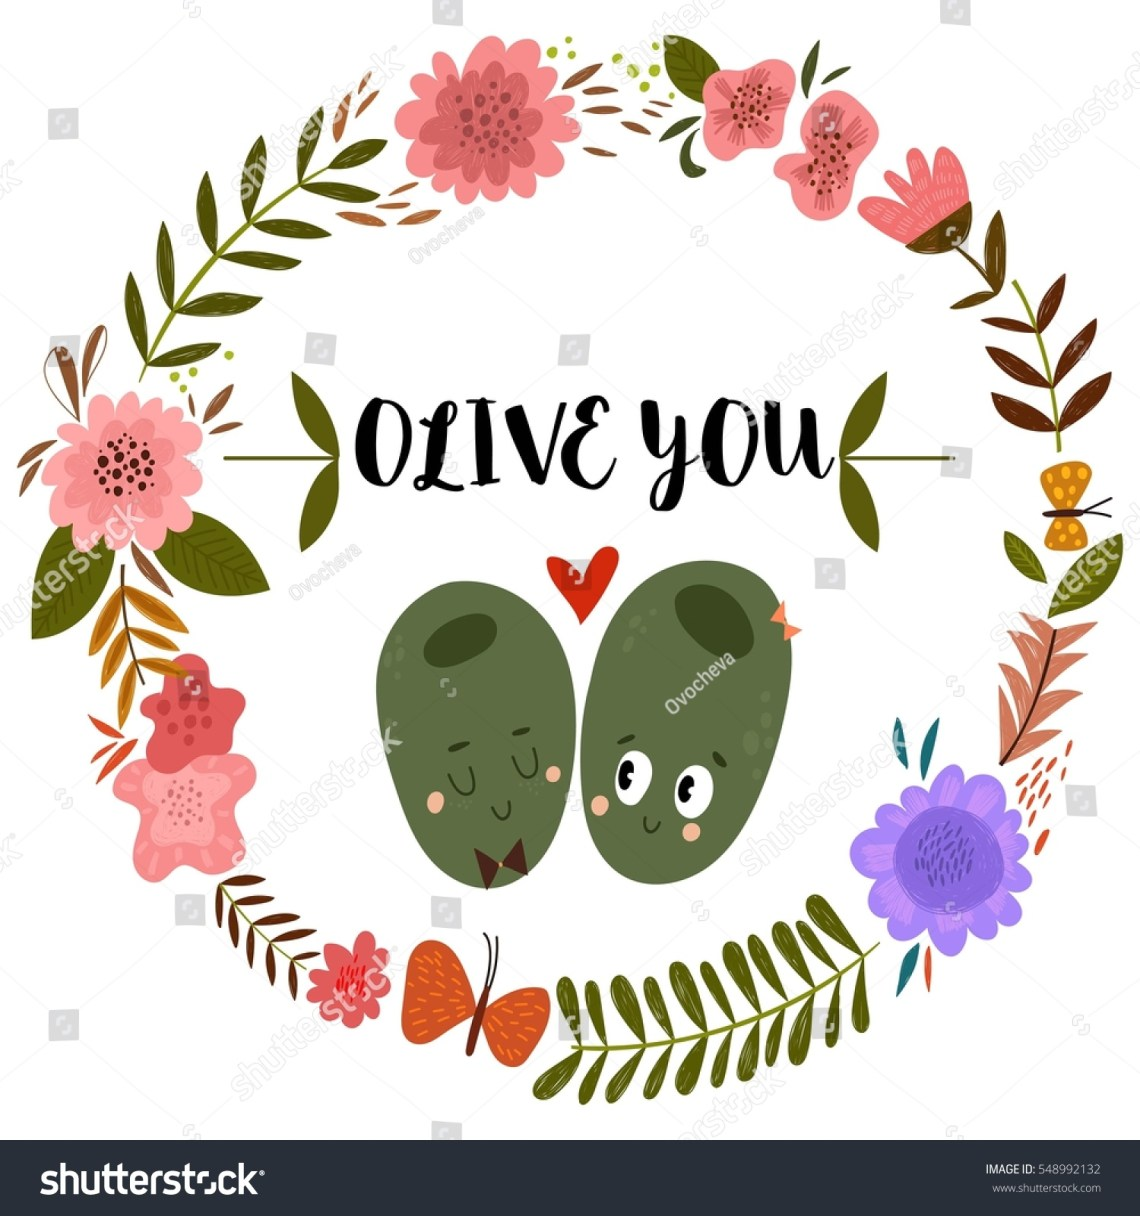 Download Olive You Romantic Hand Drawn Card Stock Vector 548992132 ...